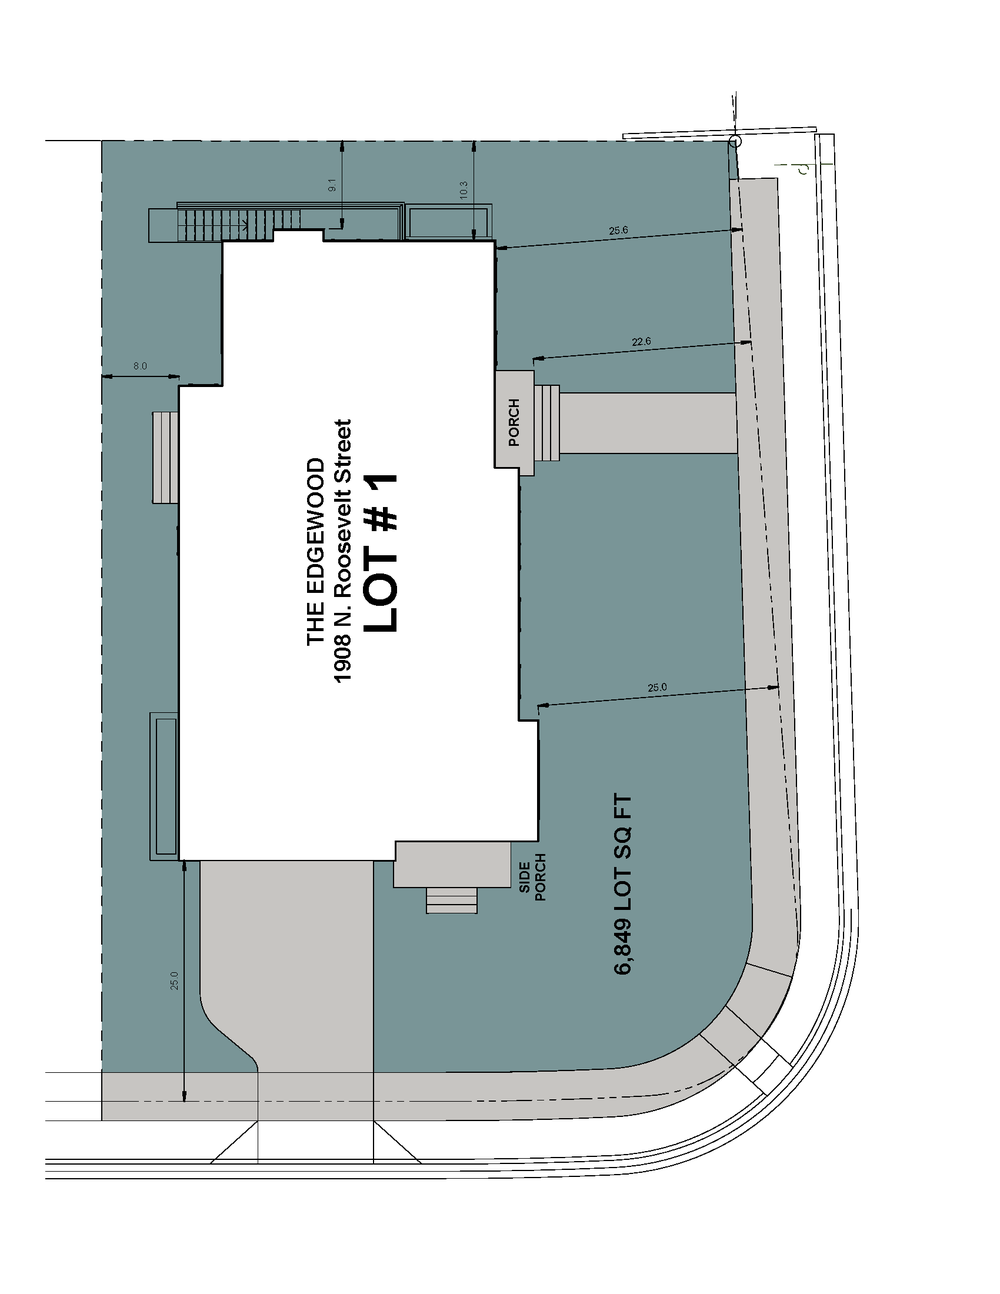 Lot 1 Site Plan-1908 N Roosevelt Street-The Edgewood Model.png